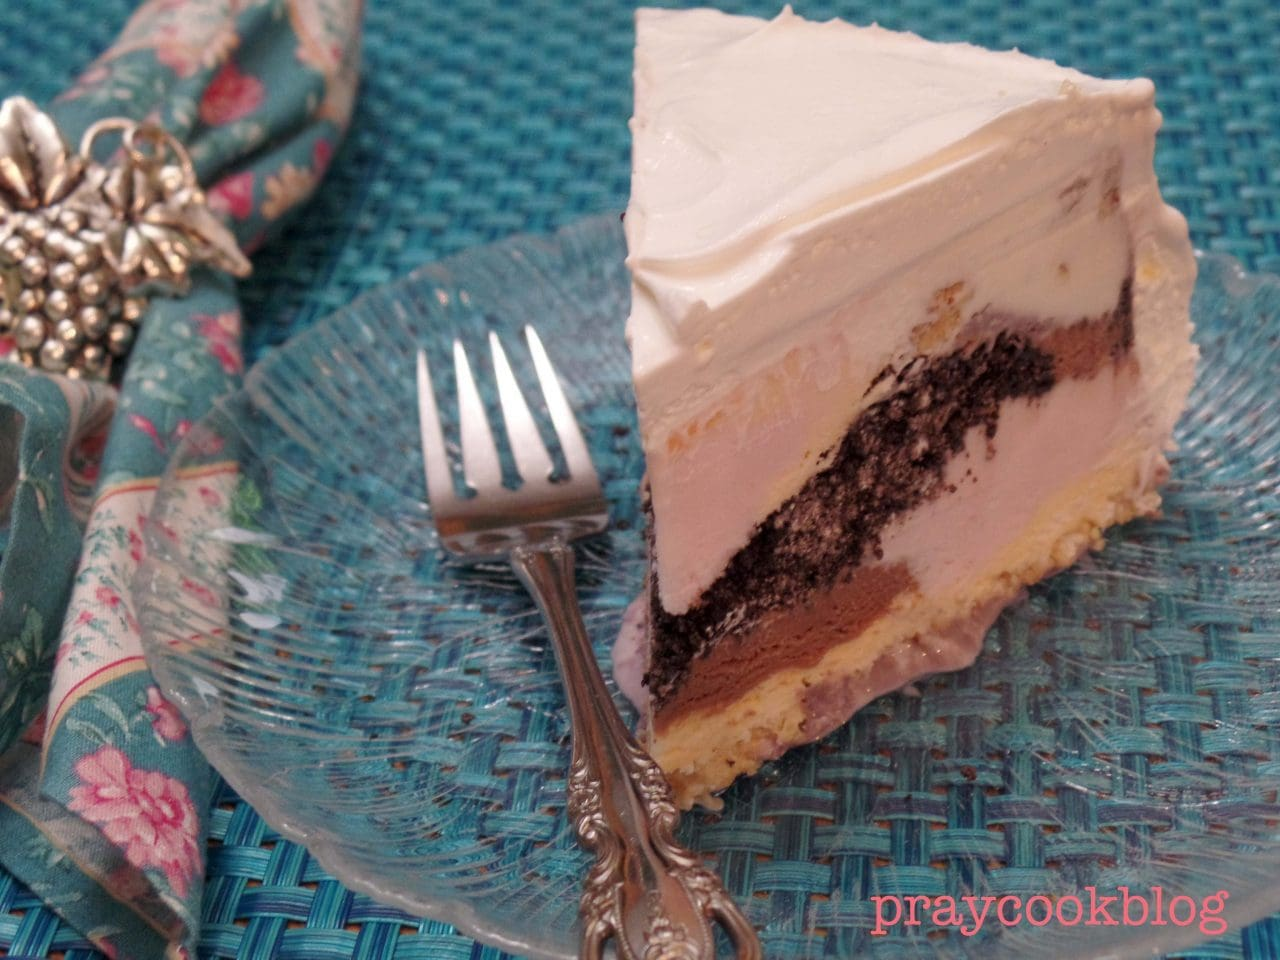 Happy 5th Blogiversary and Create Your Own Ice Cream Cake!